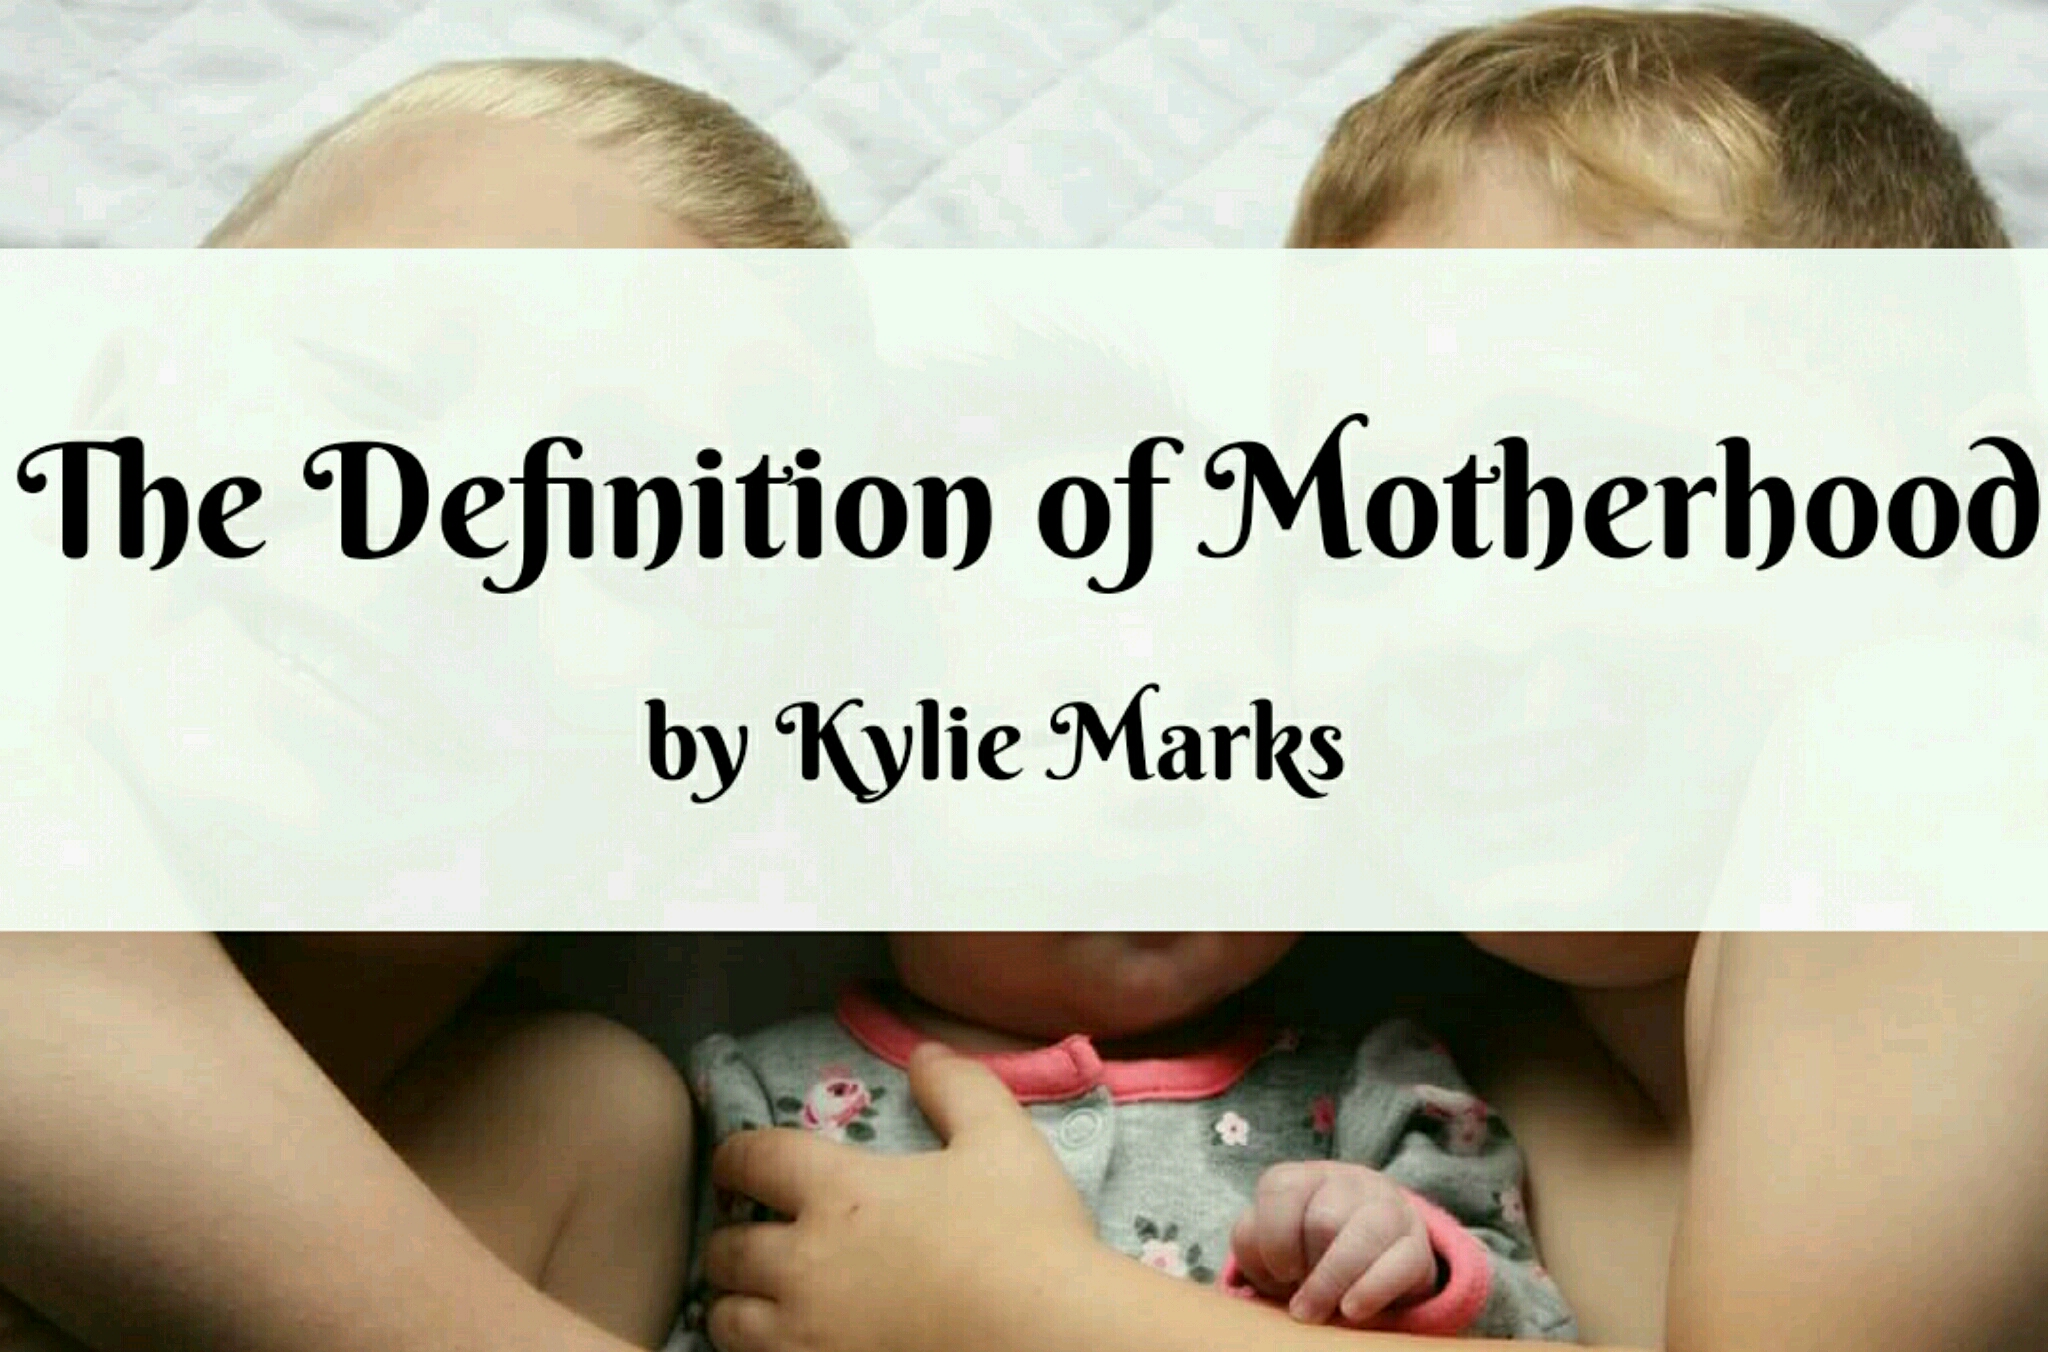 The Definition of Motherhood